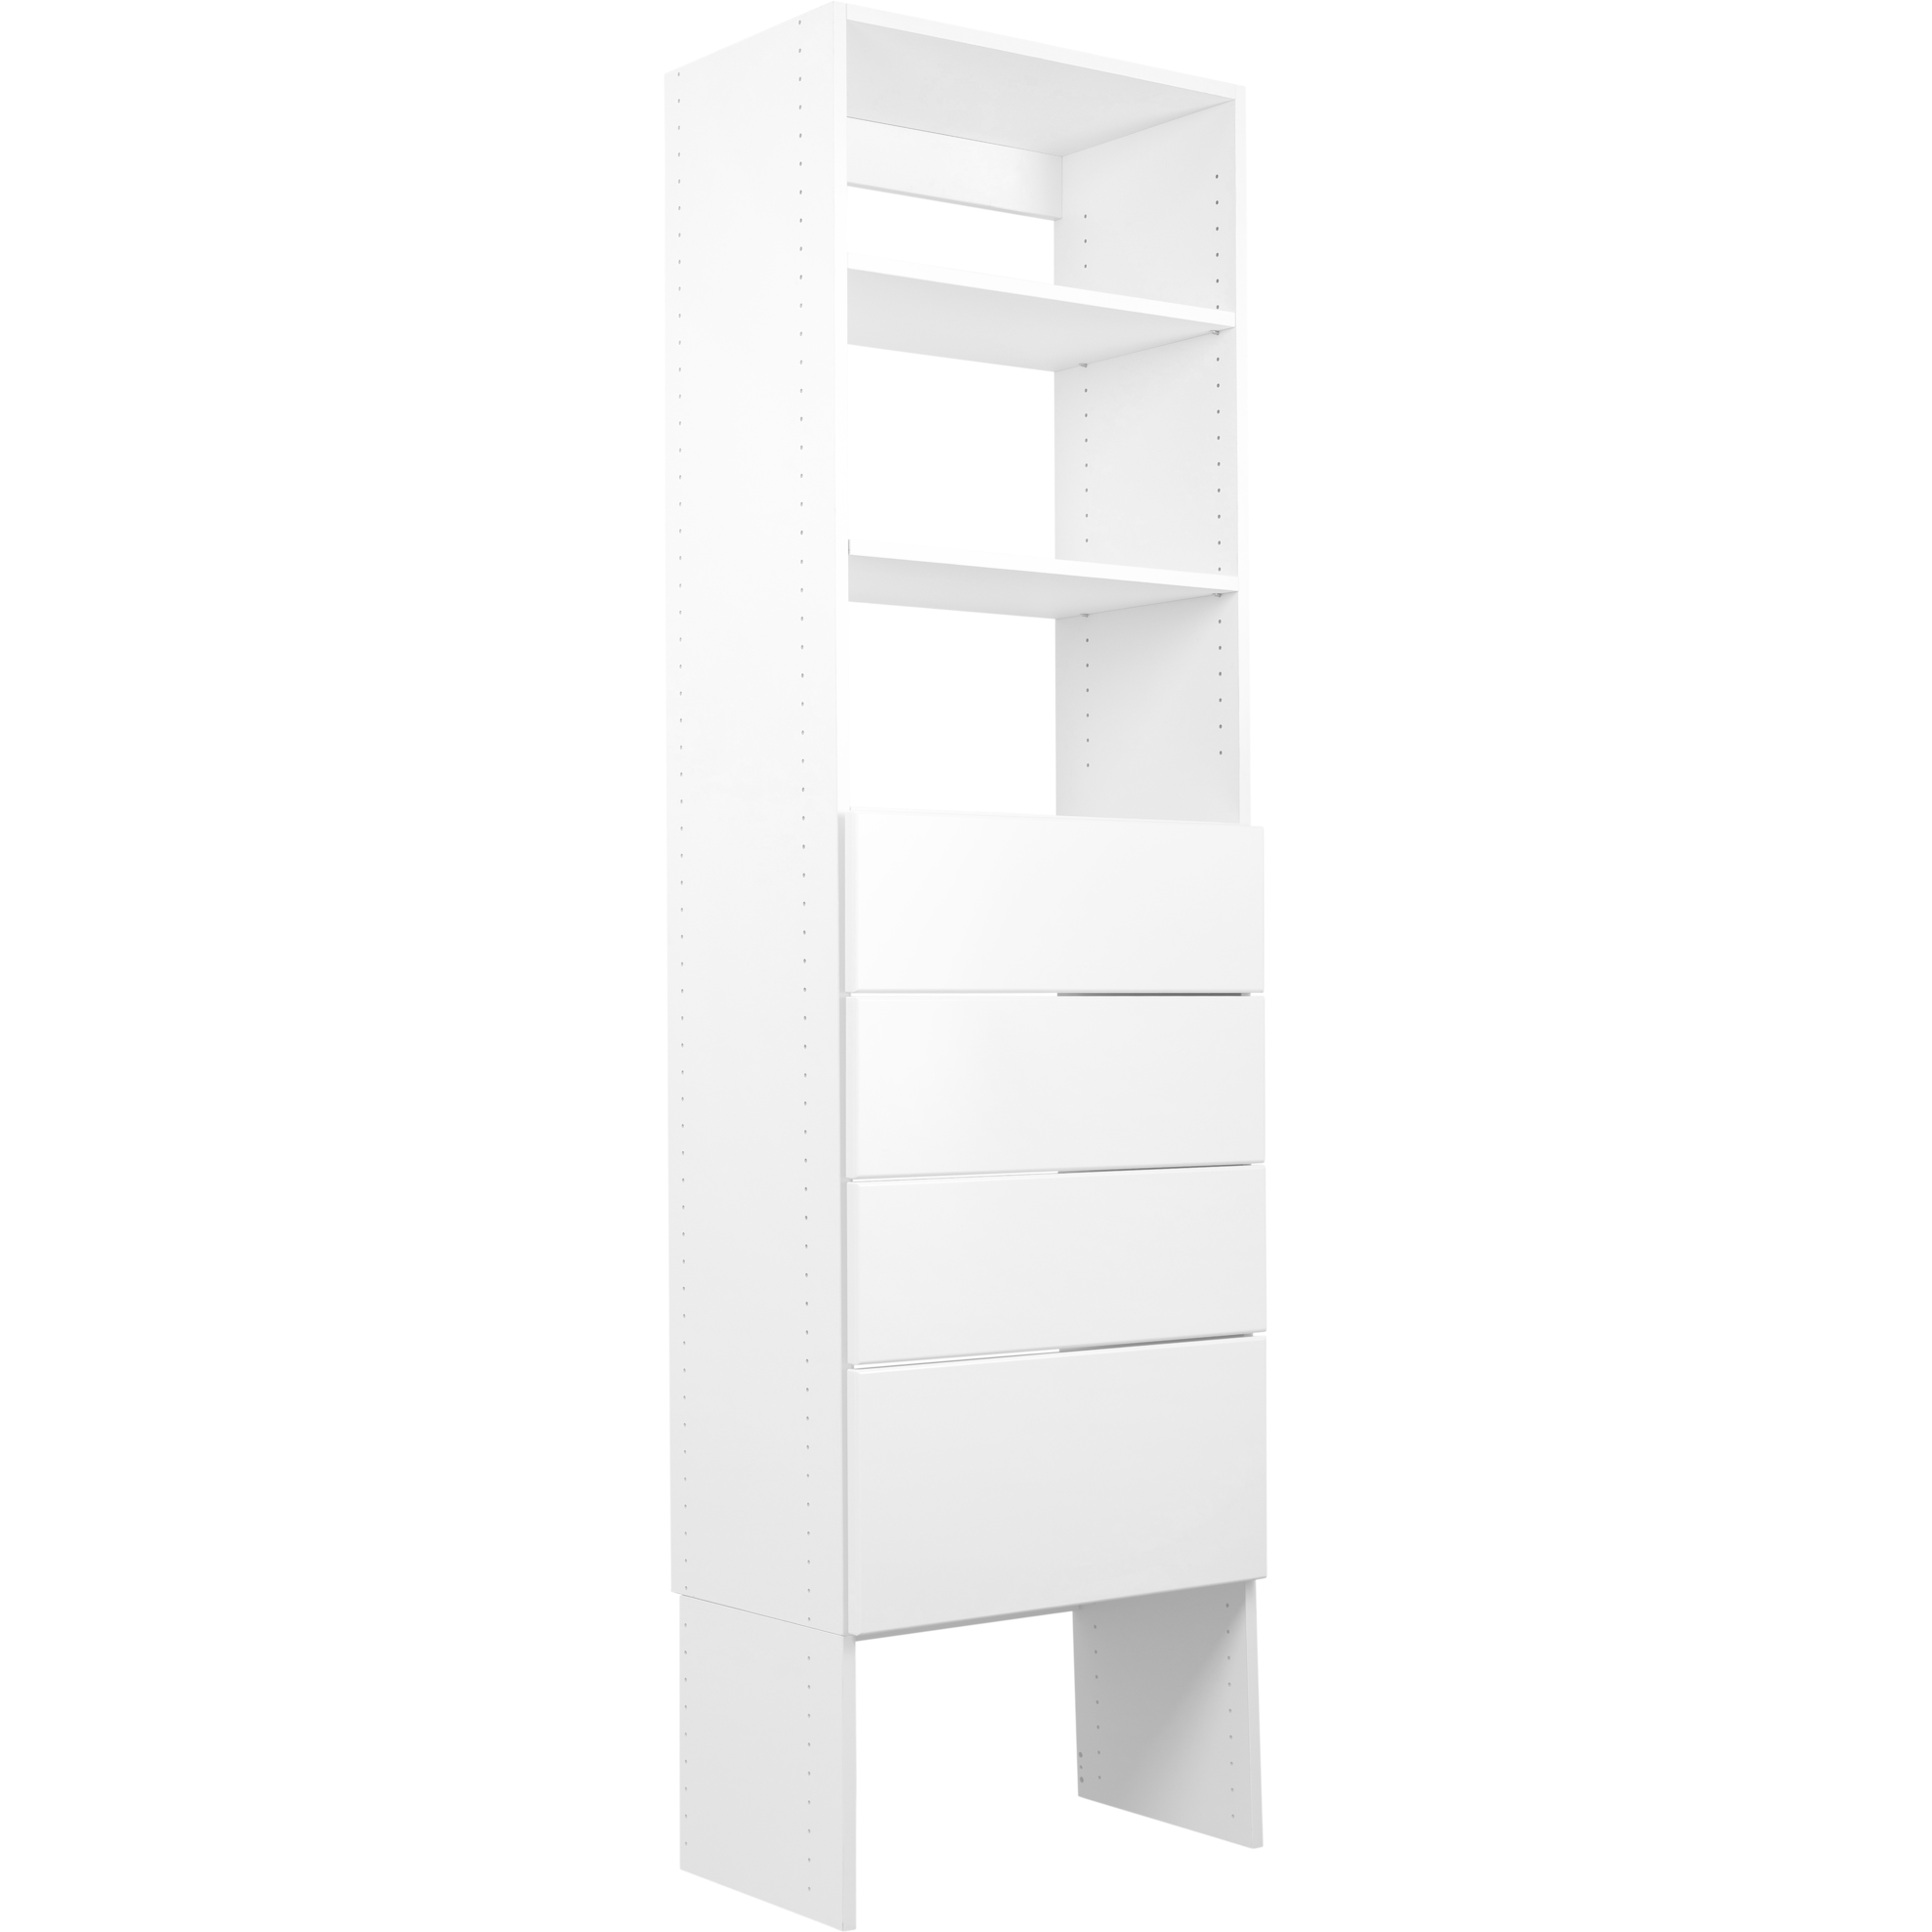 item closet drawer doors com cl wpkd and p pk idollarstore